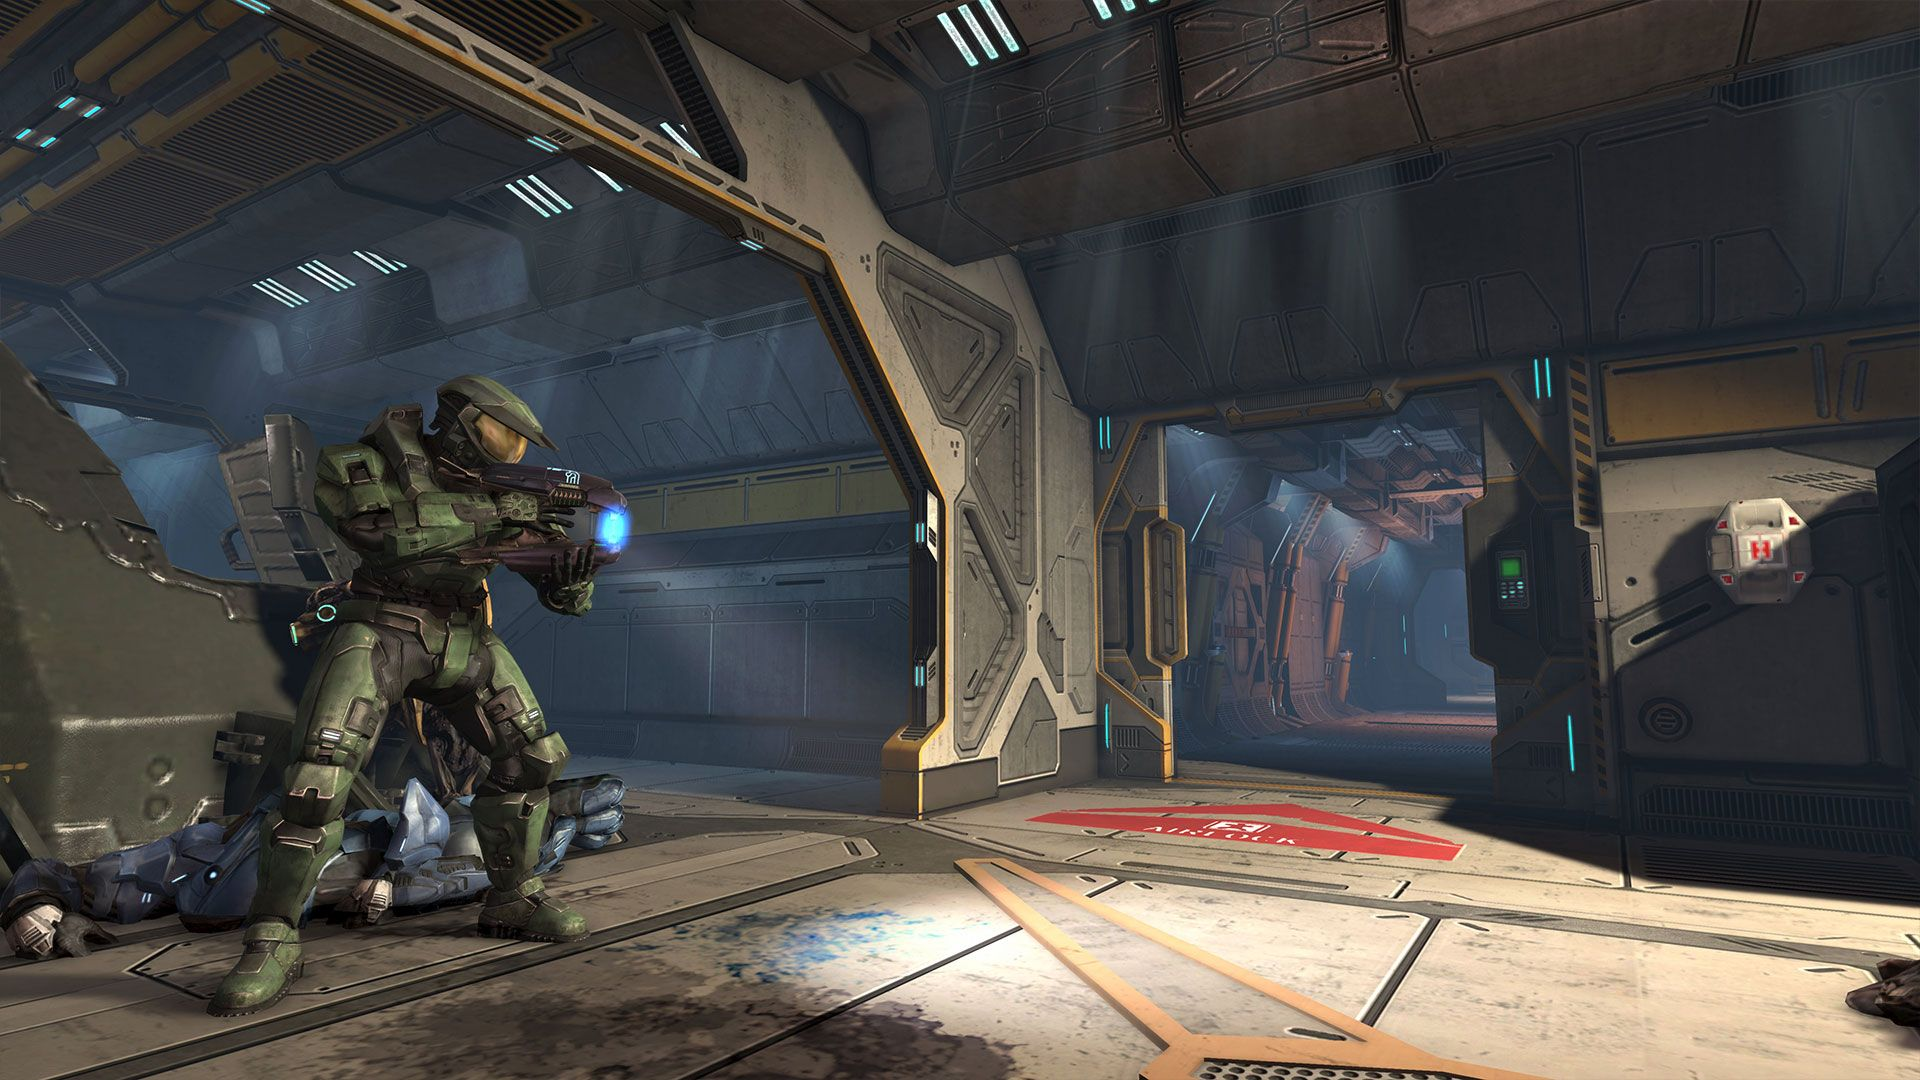 Pin by Ethan Fleming on Halo Combat evolved, Halo combat